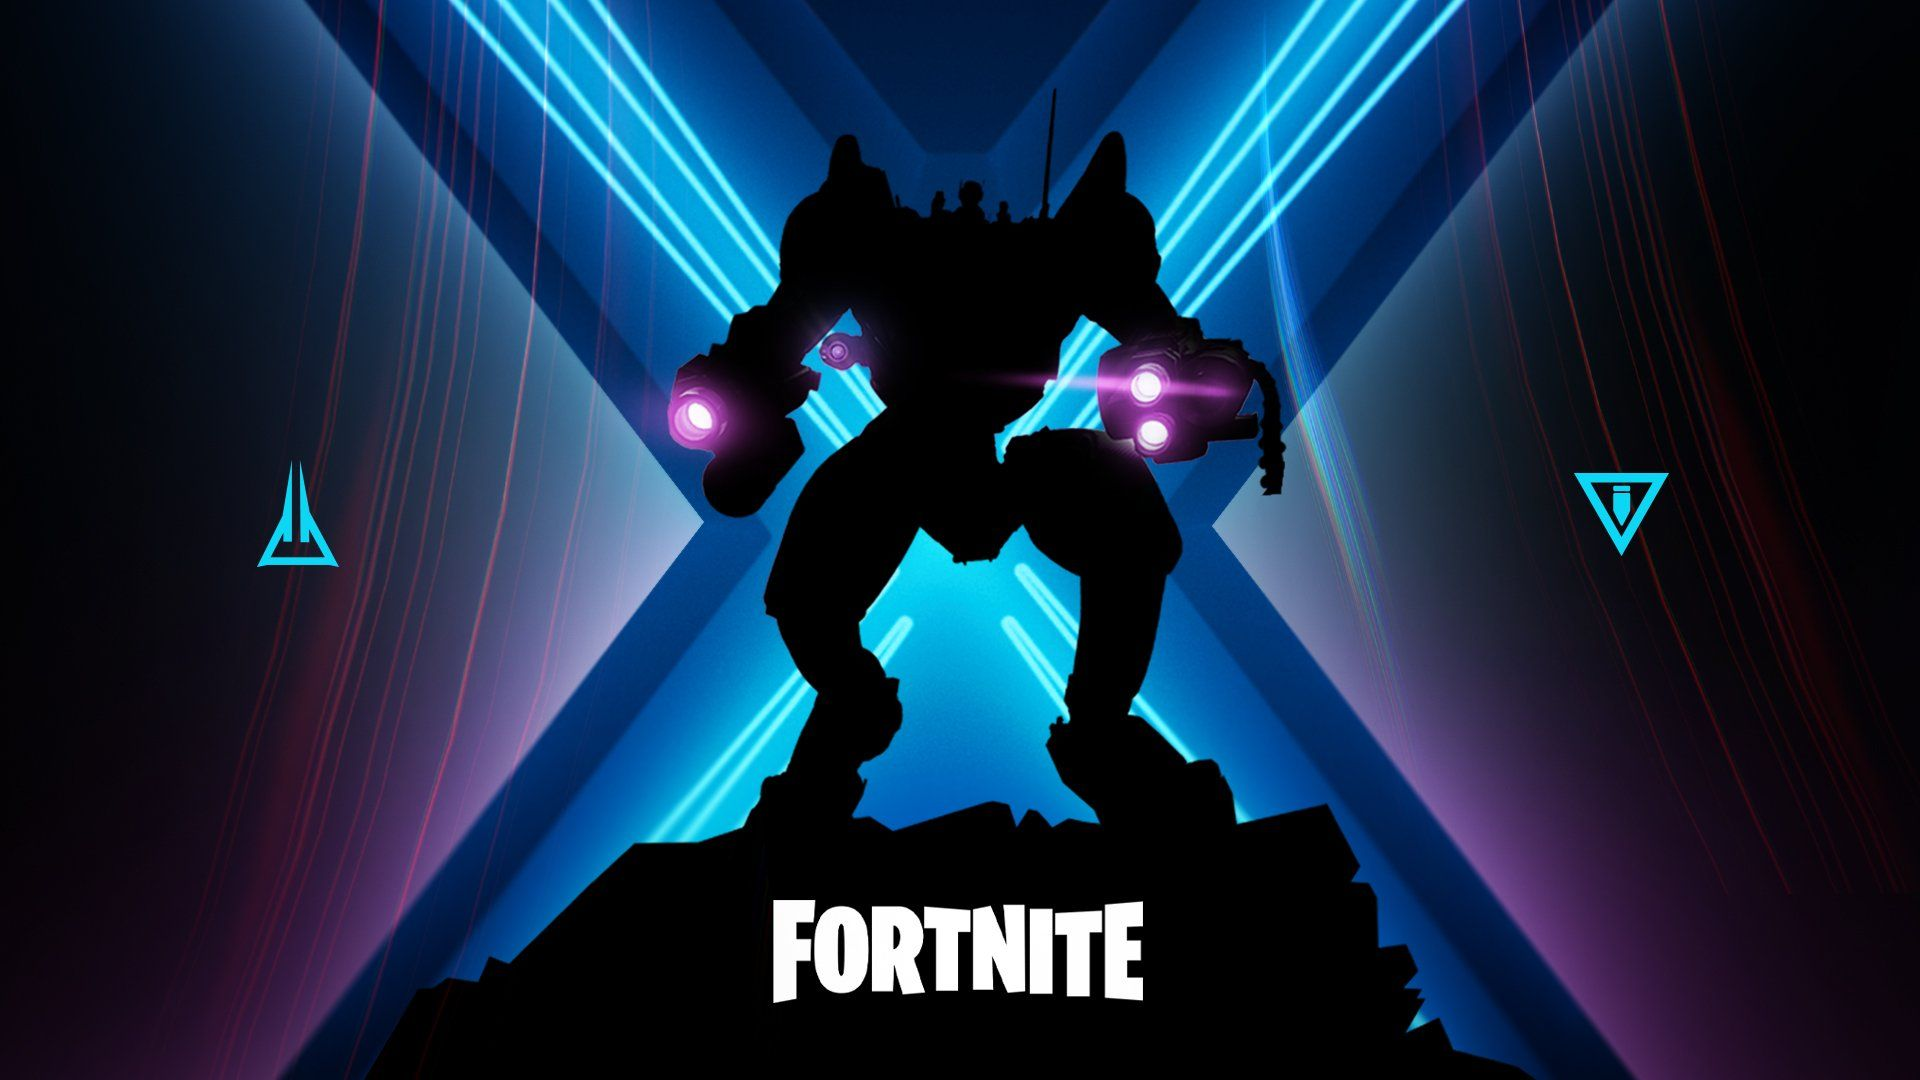 Fortnite Season X Wallpapers Top Free Fortnite Season X